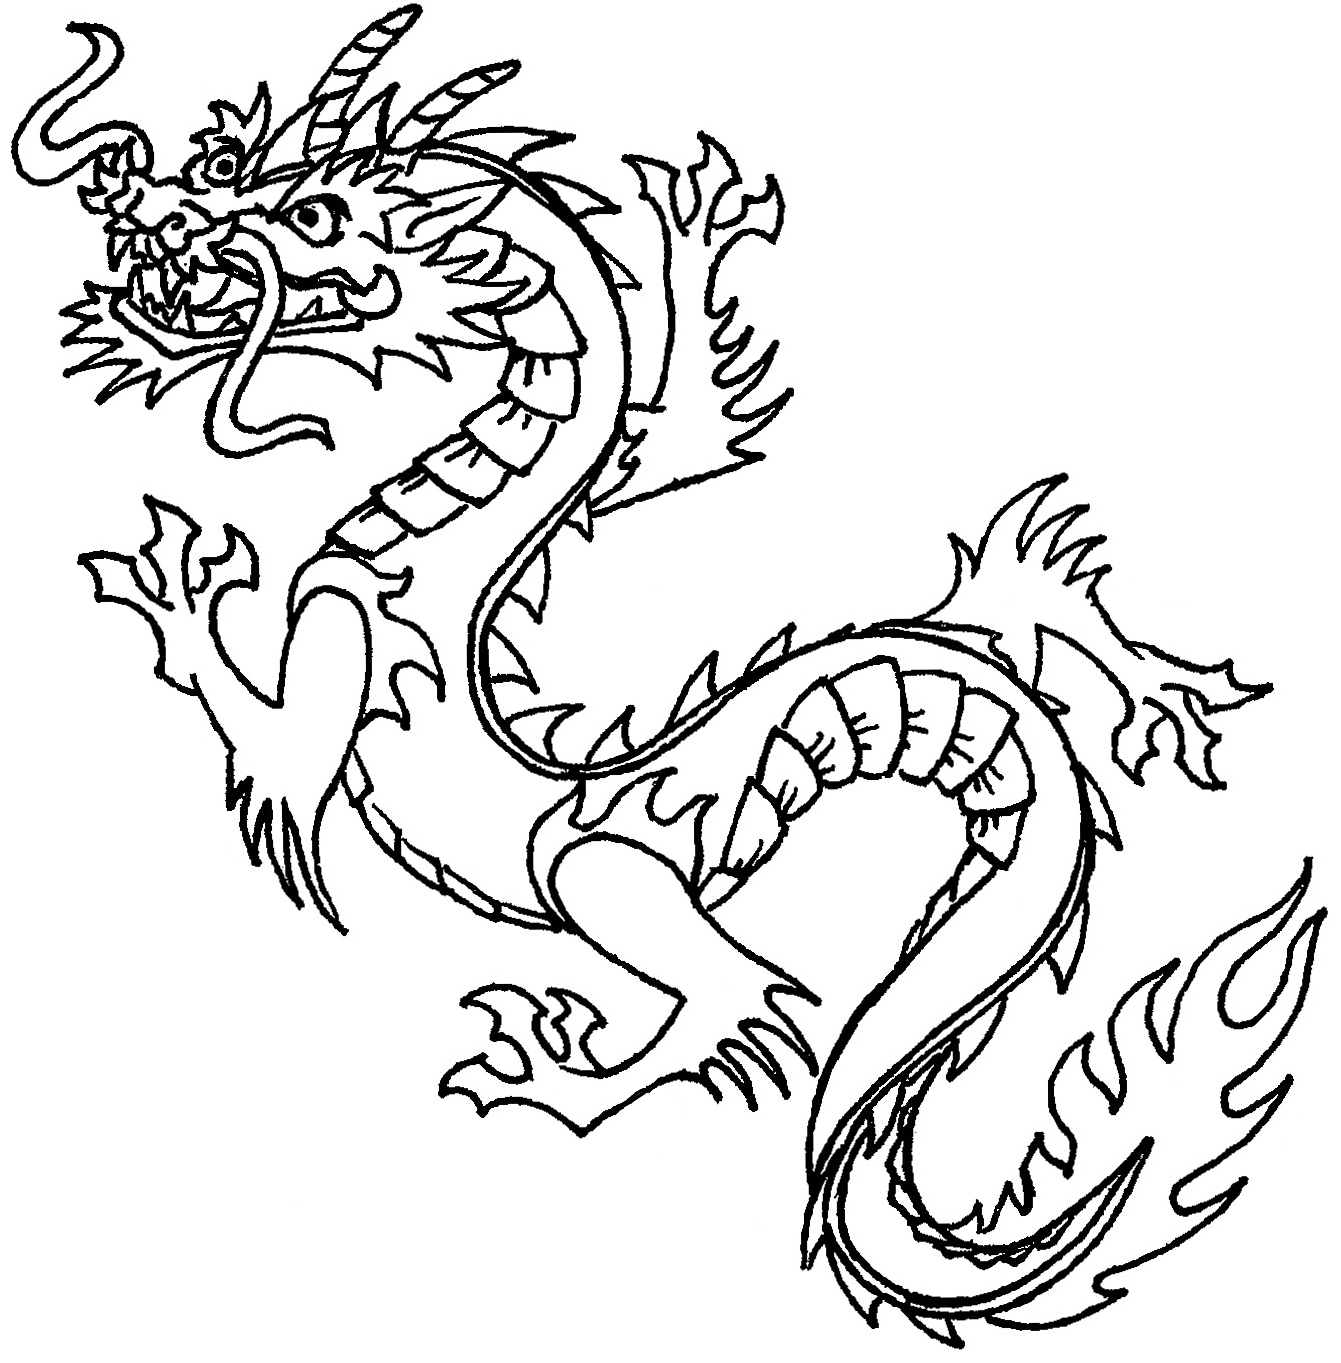 chinese dragon coloring chinese dragon coloring pages coloring pages to download chinese dragon coloring